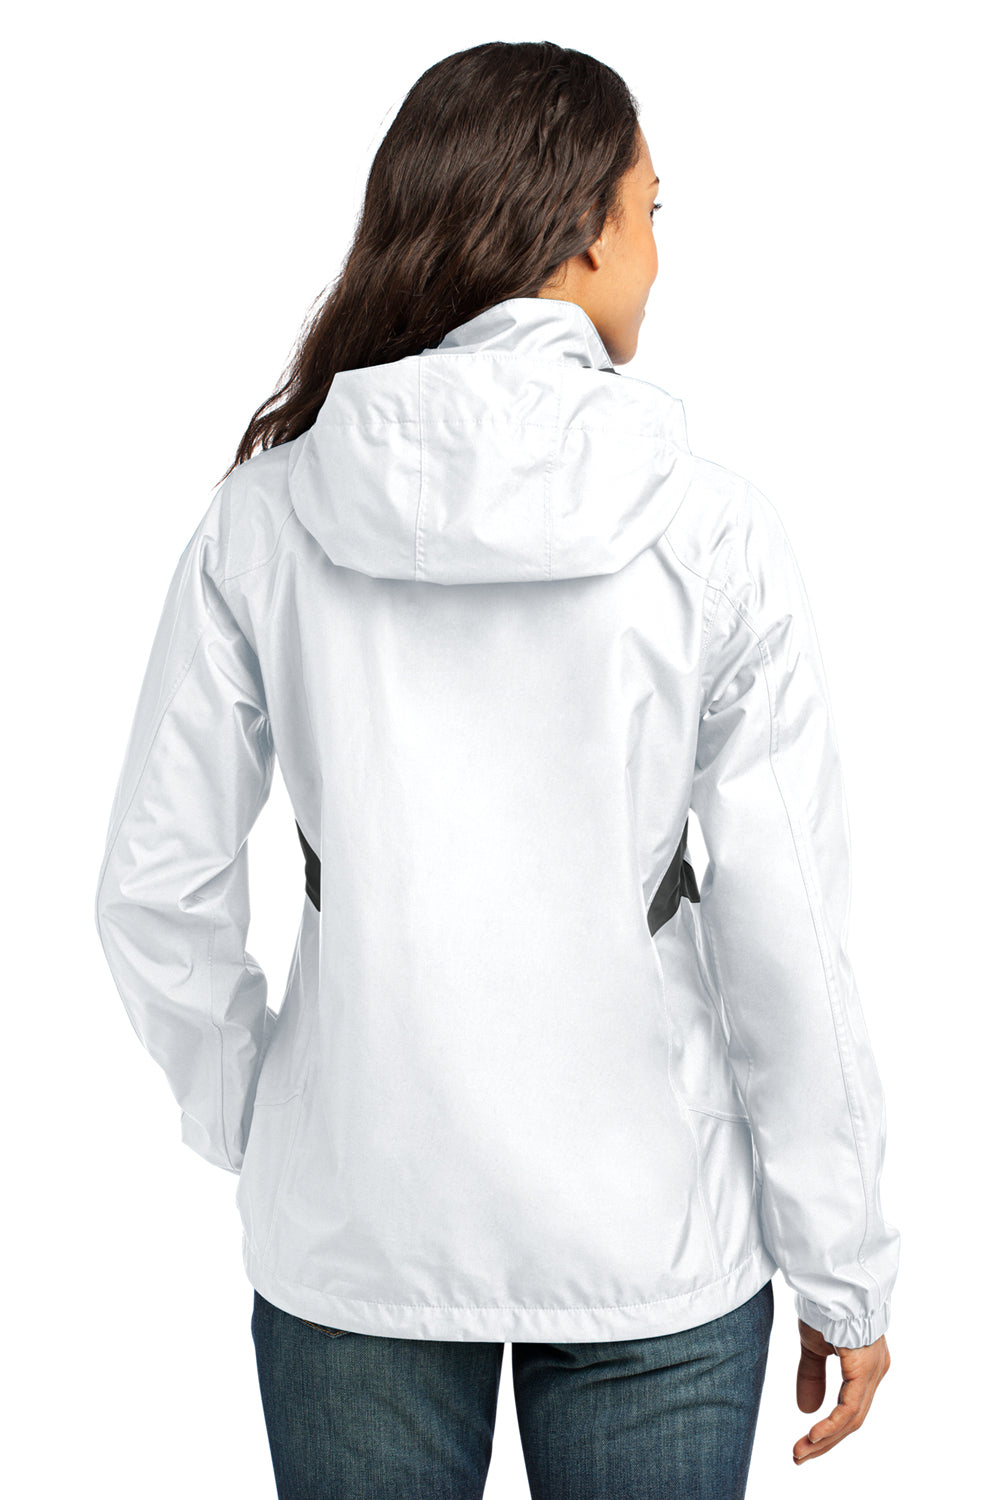 Eddie Bauer EB551 Womens Waterproof Full Zip Hooded Jacket White Back